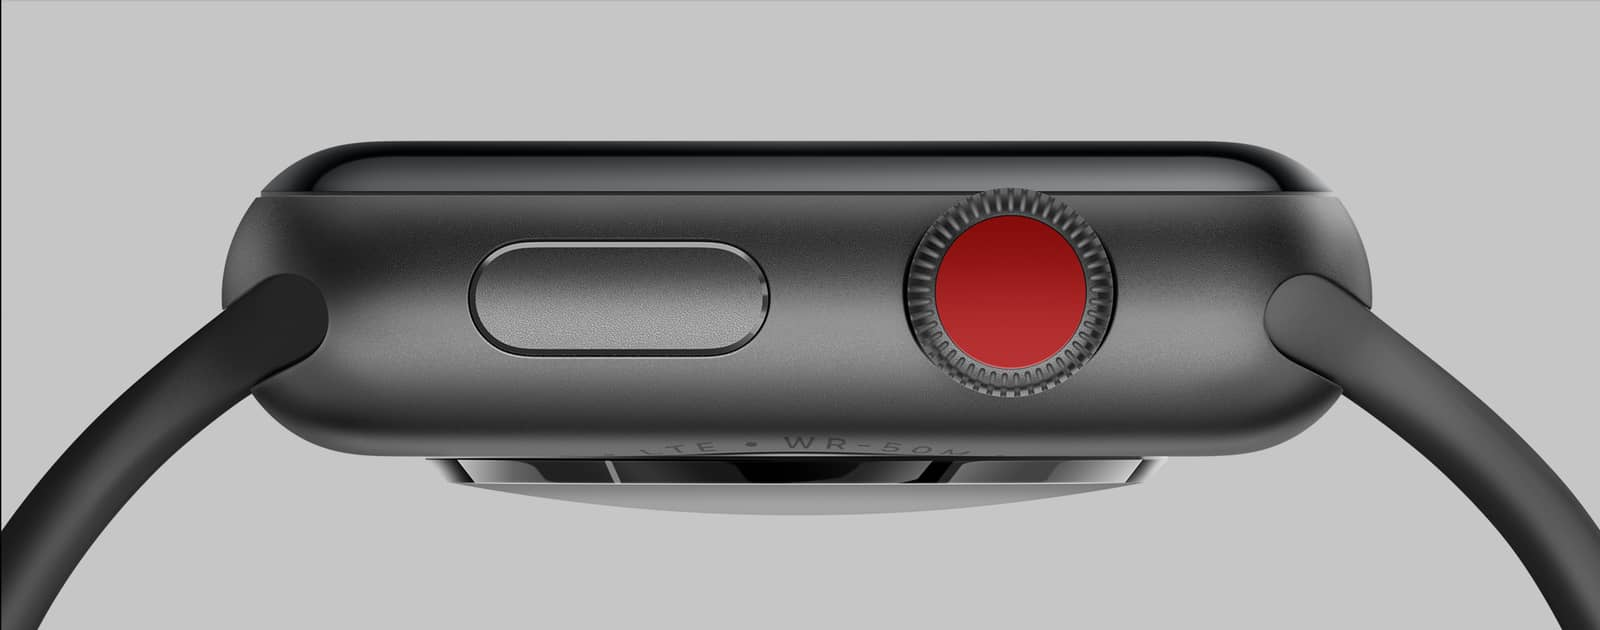 The Inside Story Behind the Apple Watch